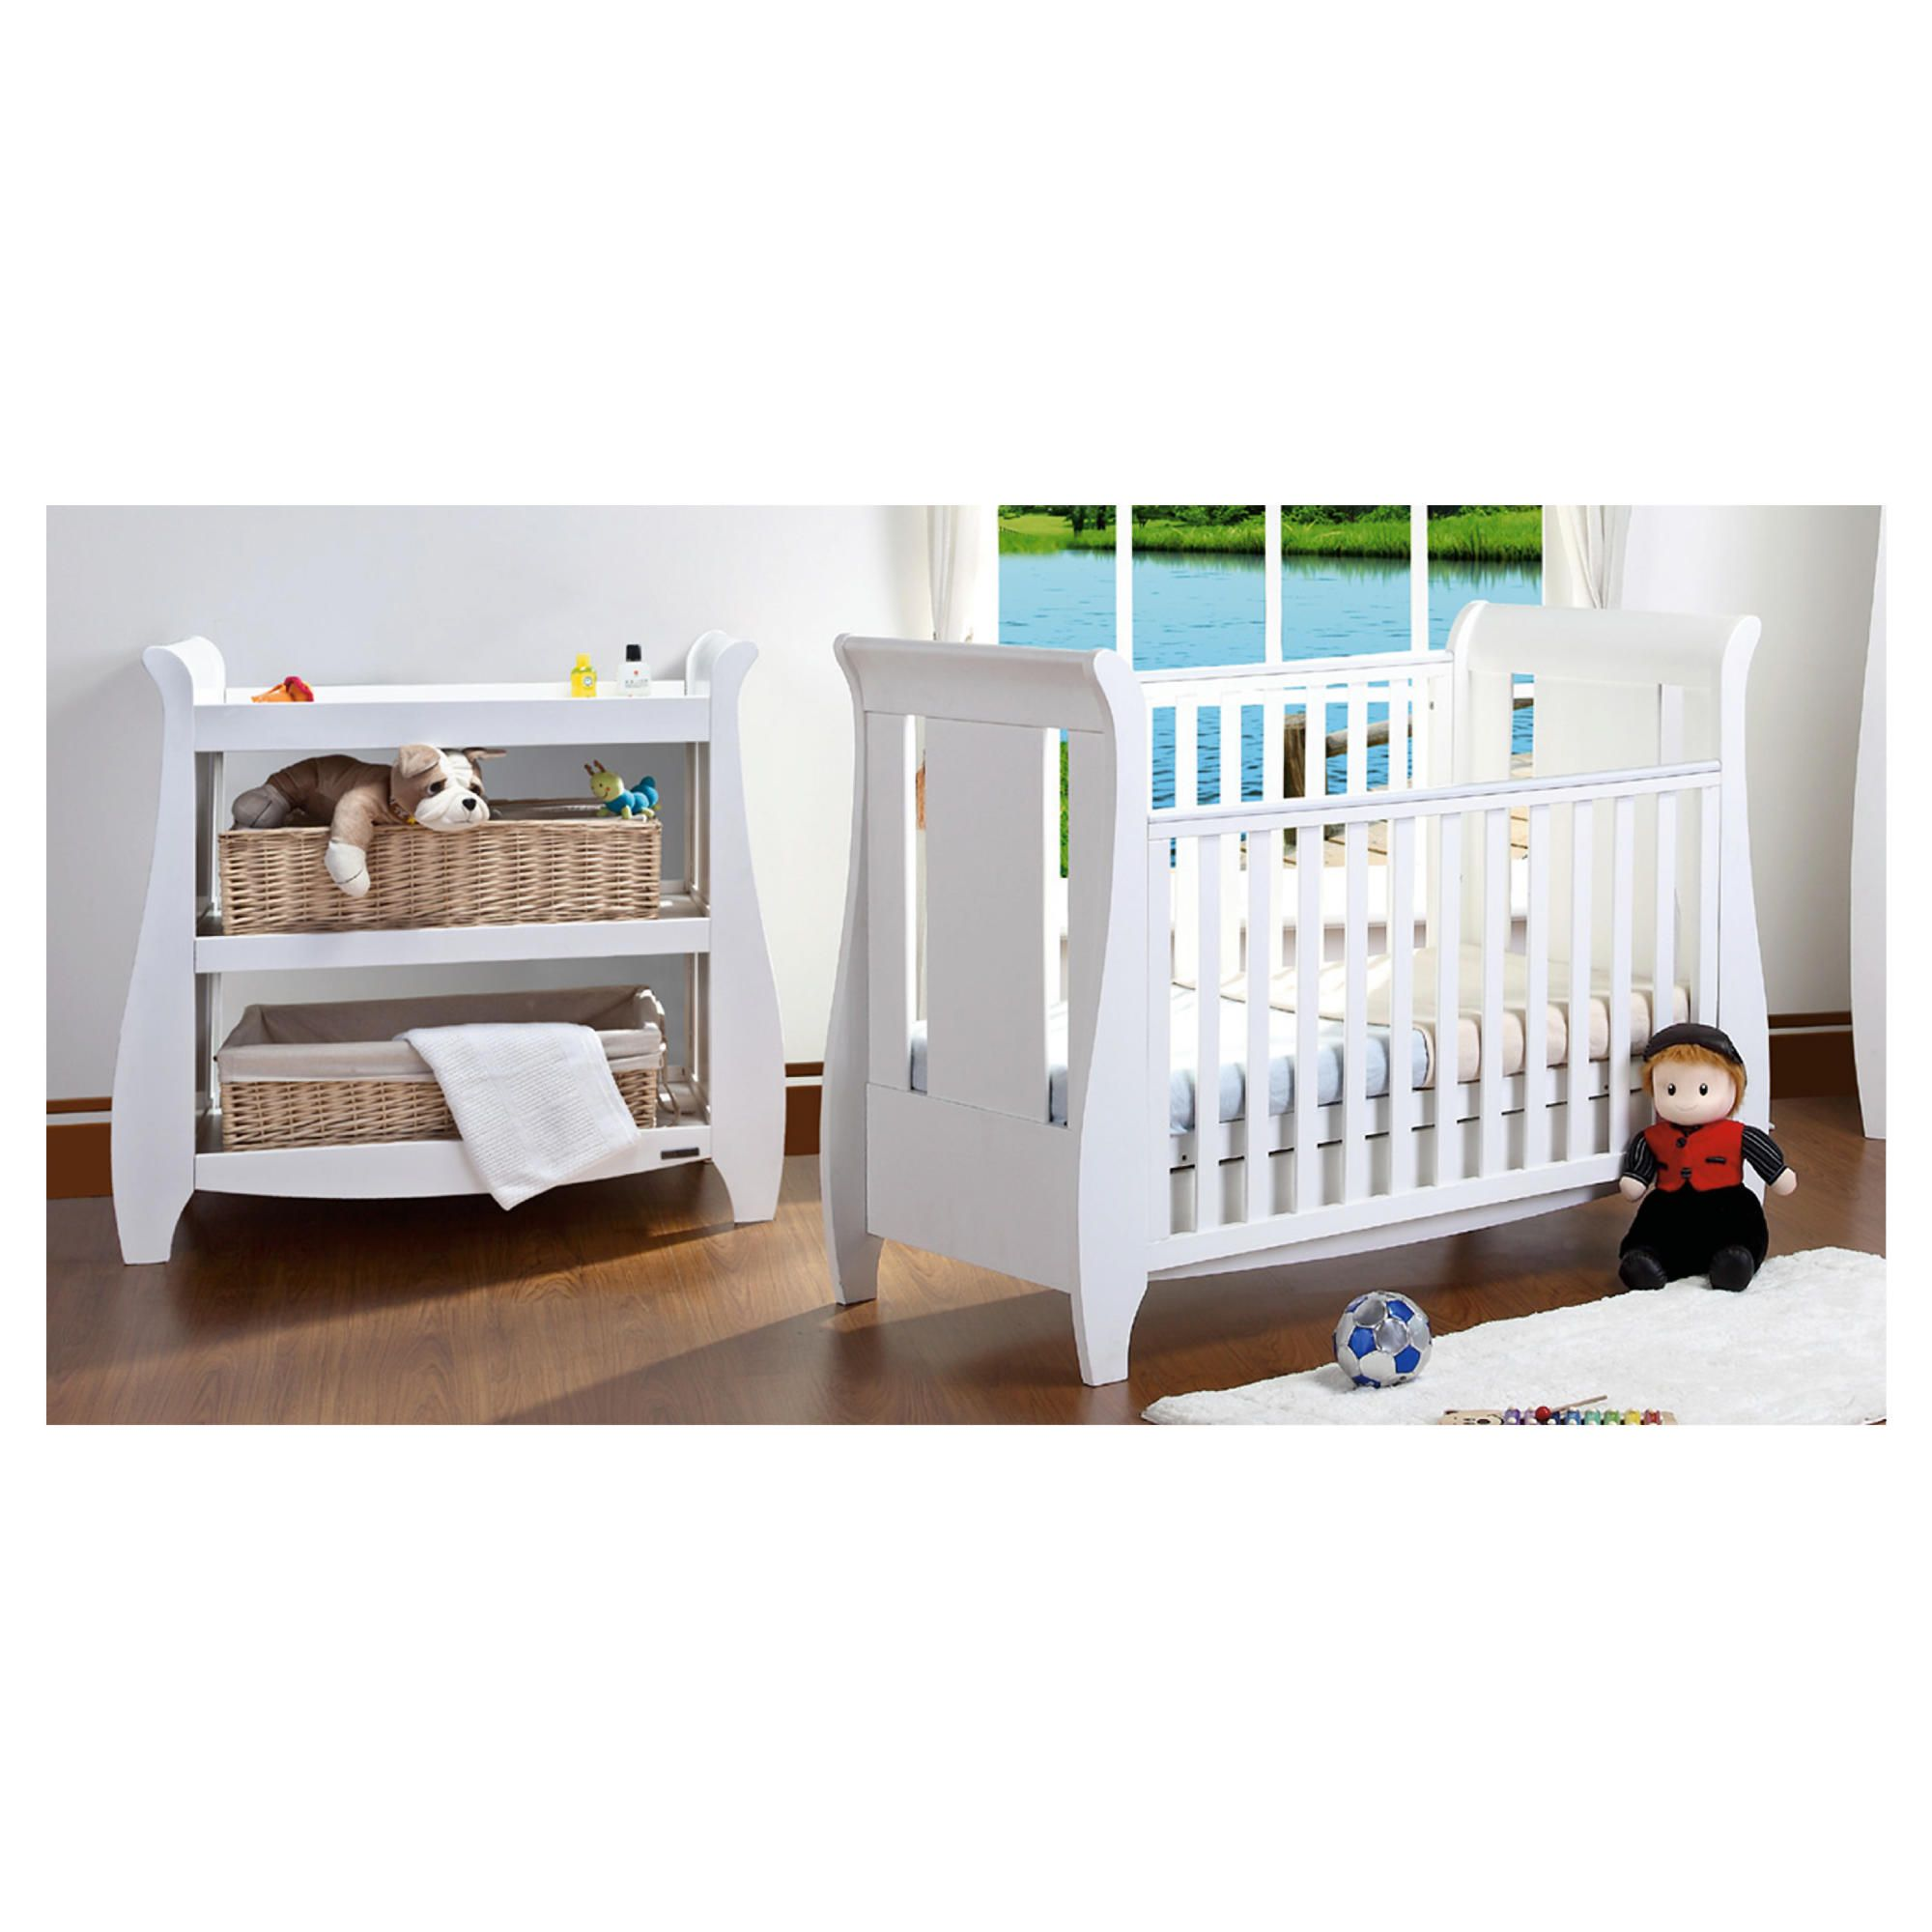 Tutti Bambini Katie Cotbed with Shelf Changer Nursery Room Set, White at Tesco Direct